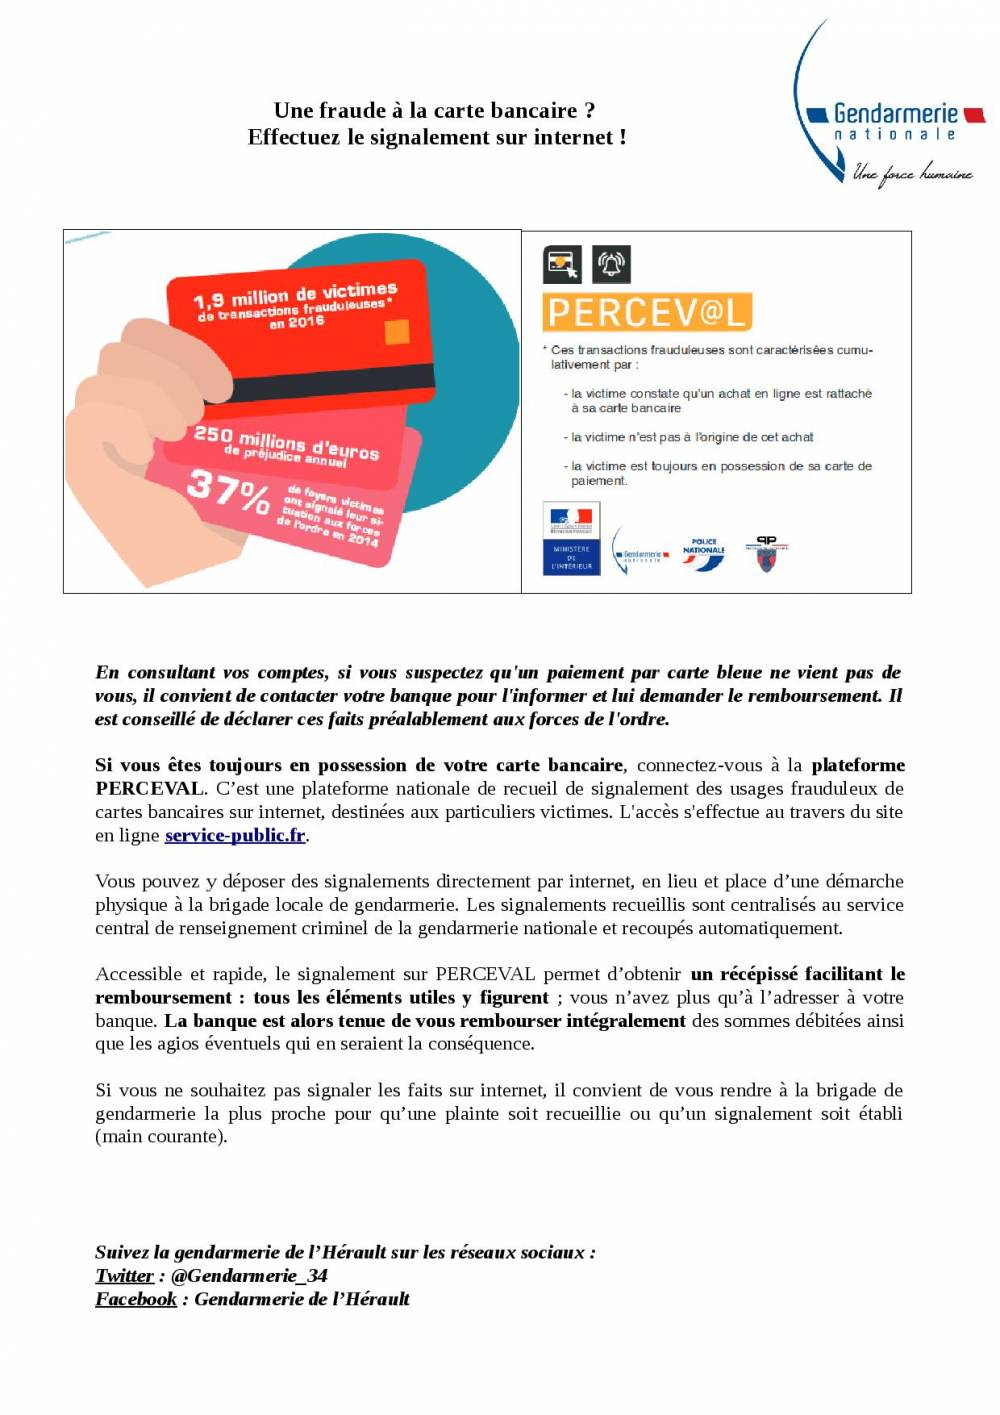 Article Fraude à la carte bancaire page 001